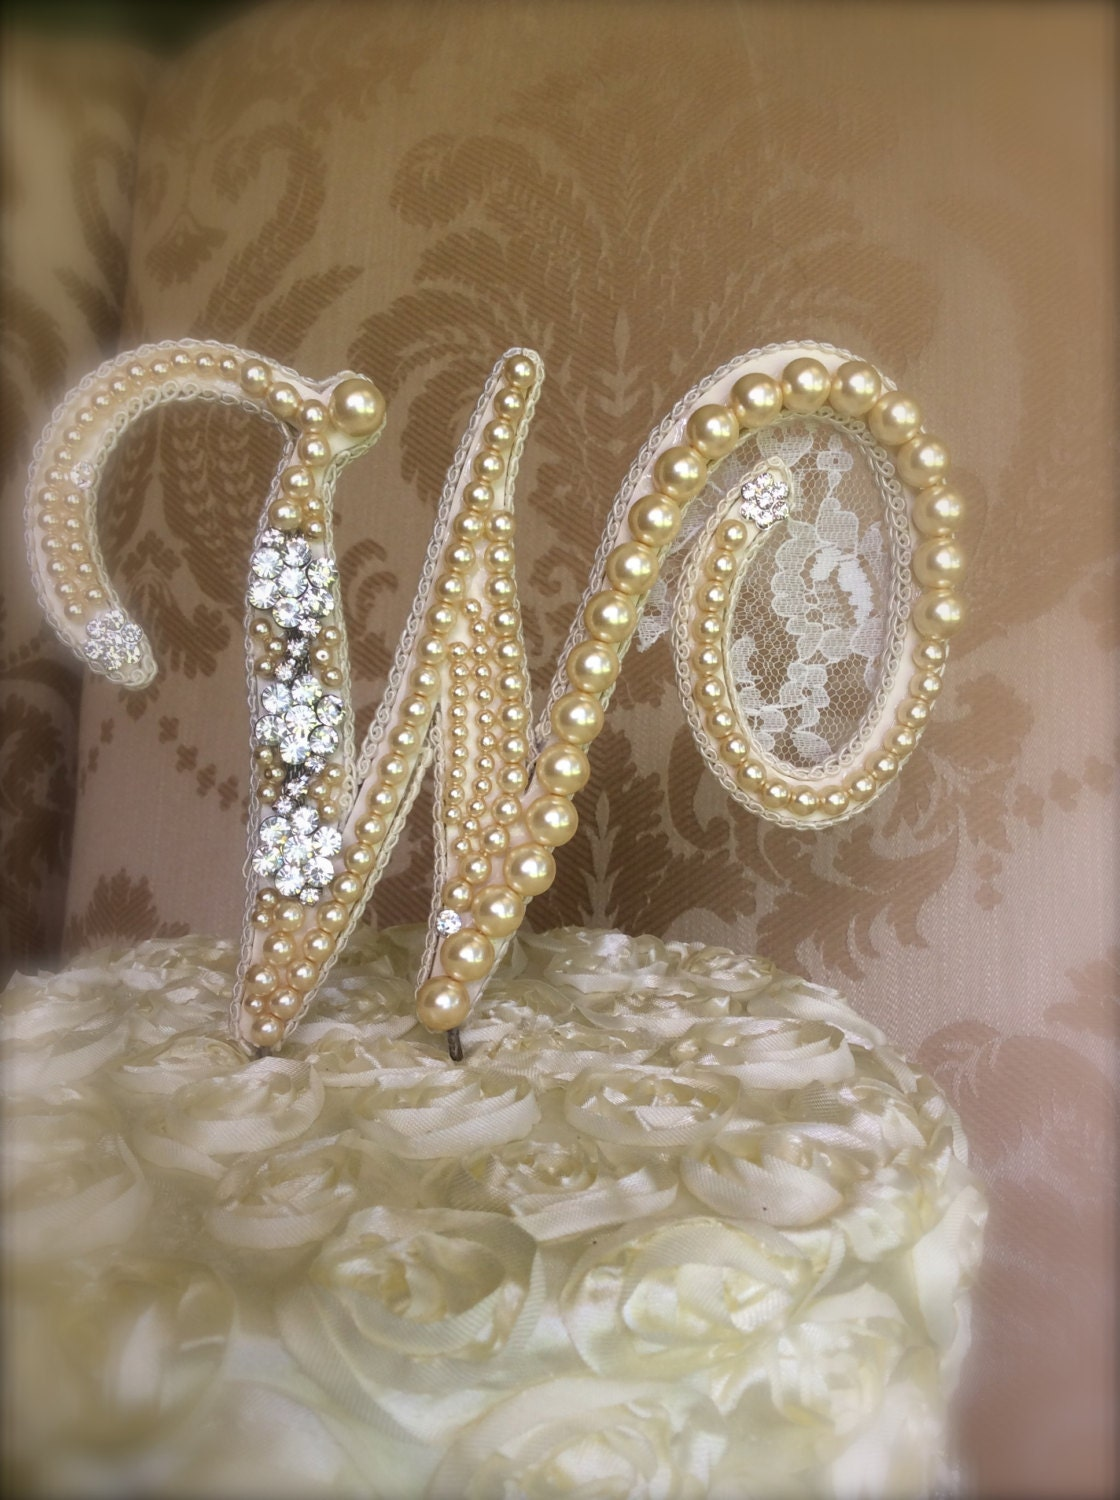 custom monogram wedding cake toppers with lace pears and